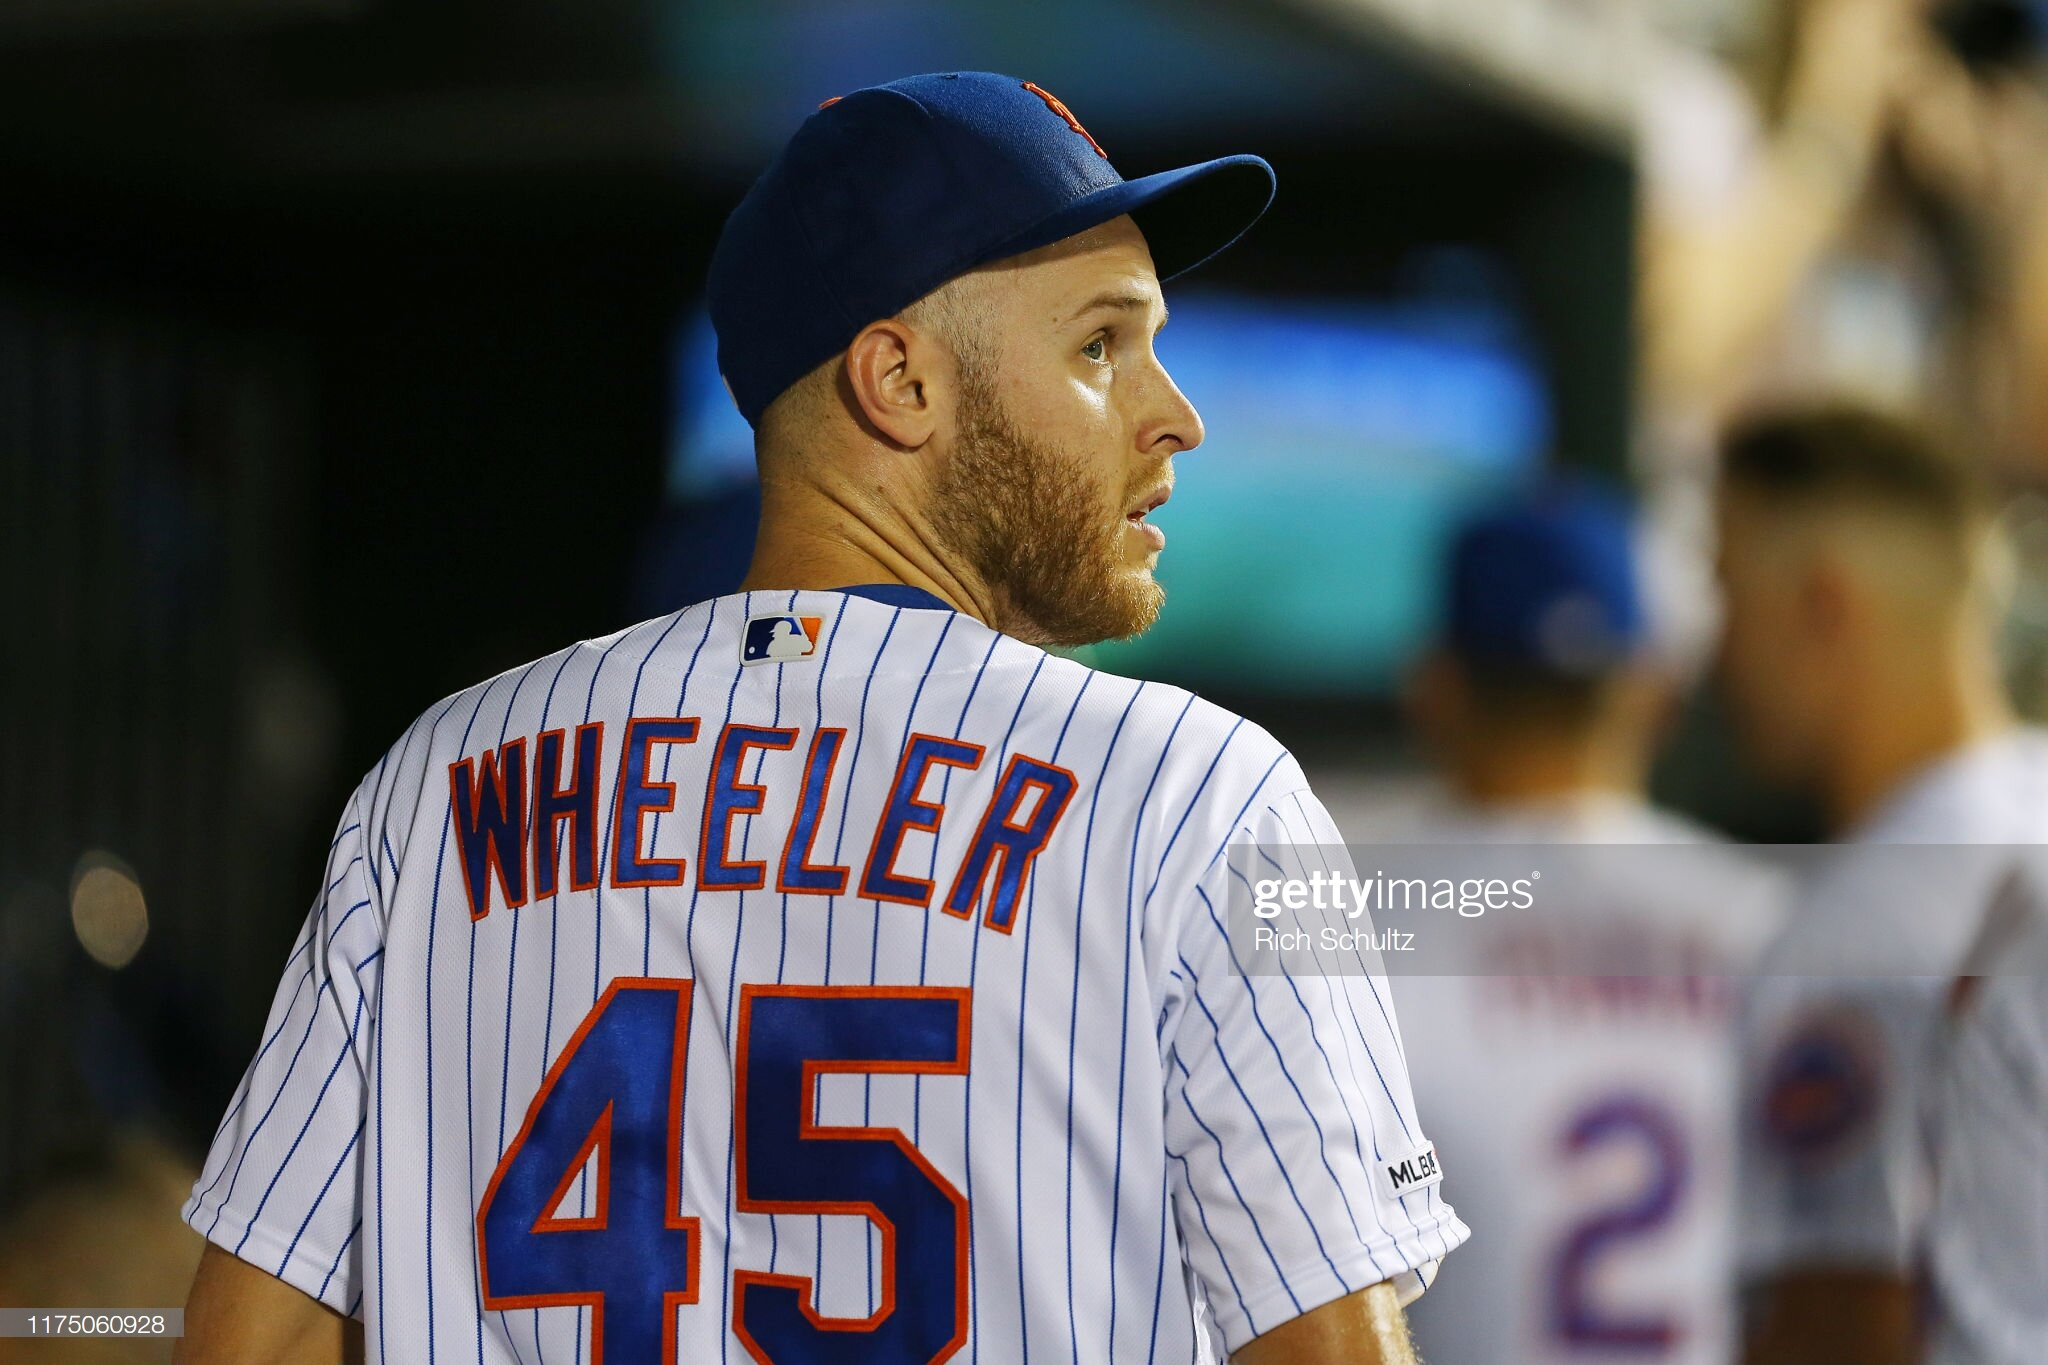 Zack Wheeler perplexed after Mets blow another game.